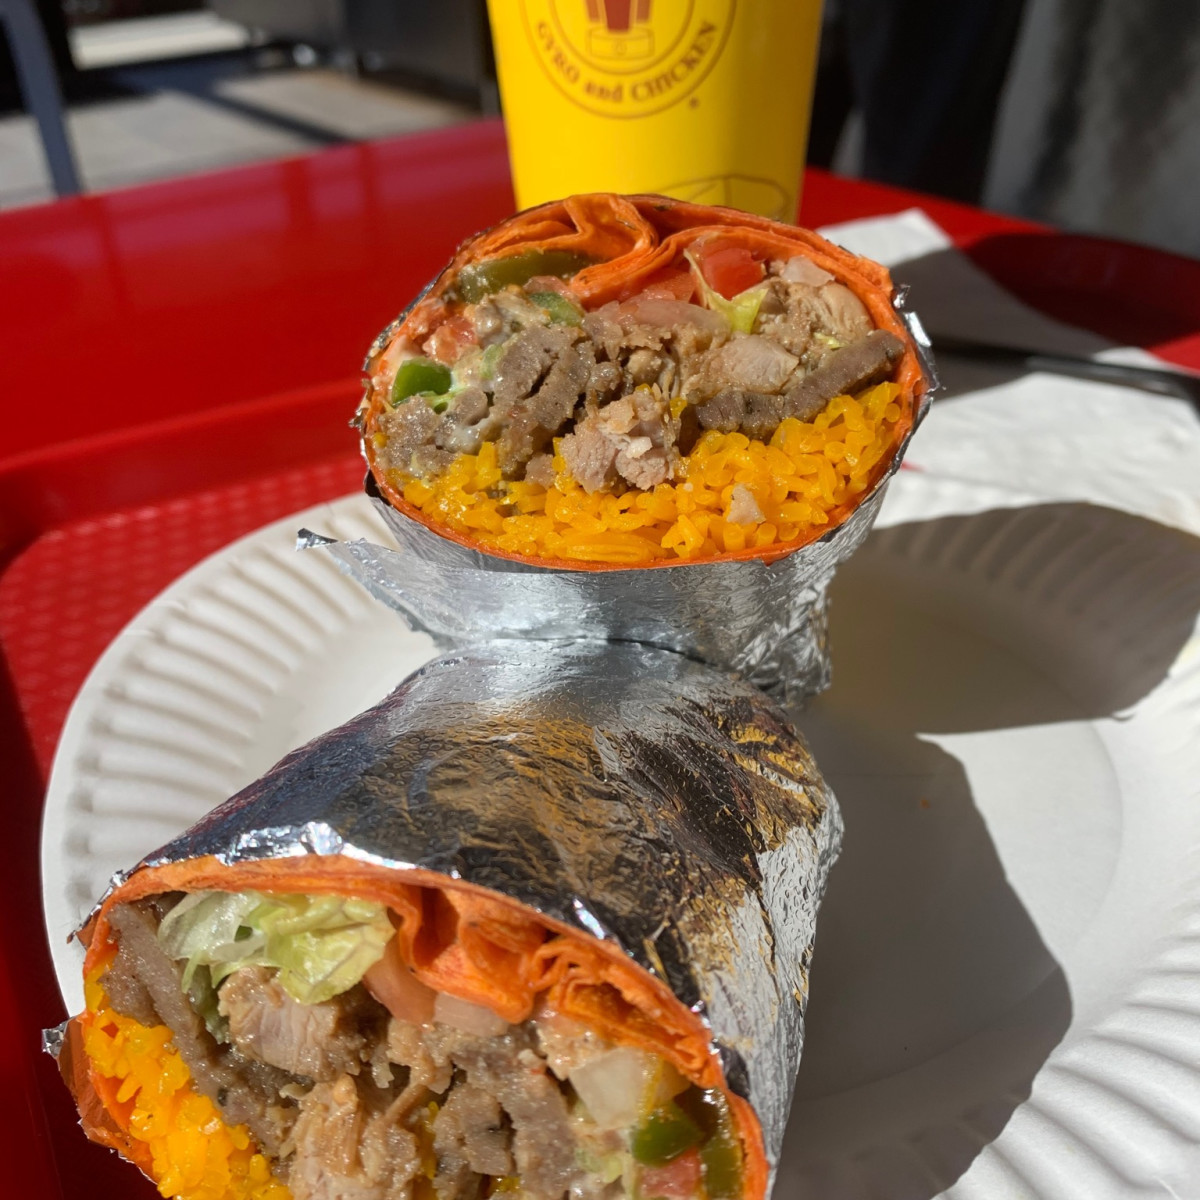 Halal Guys Garden Oaks burriot